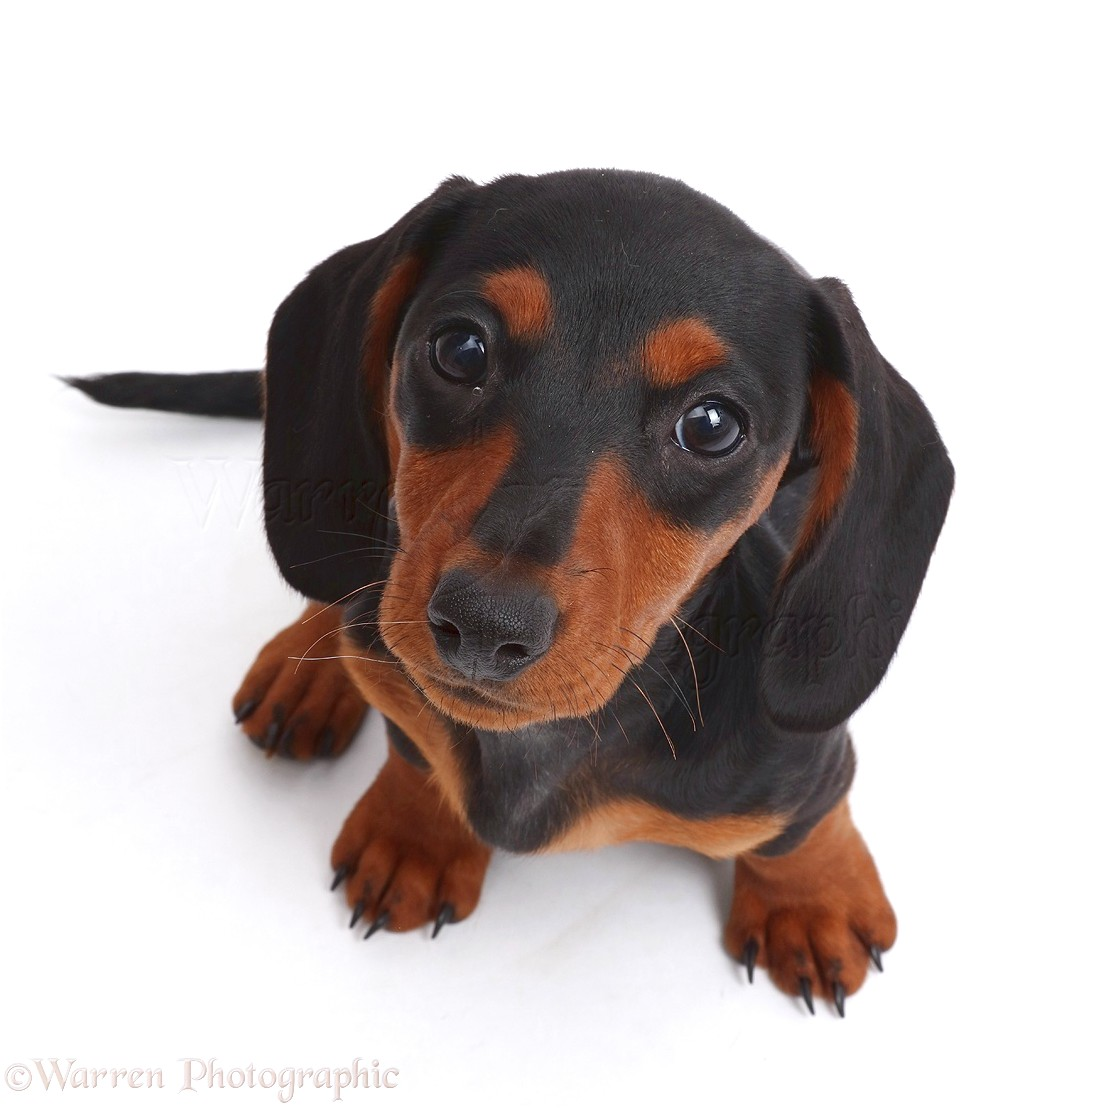 black and tan dachshund puppies for sale near me